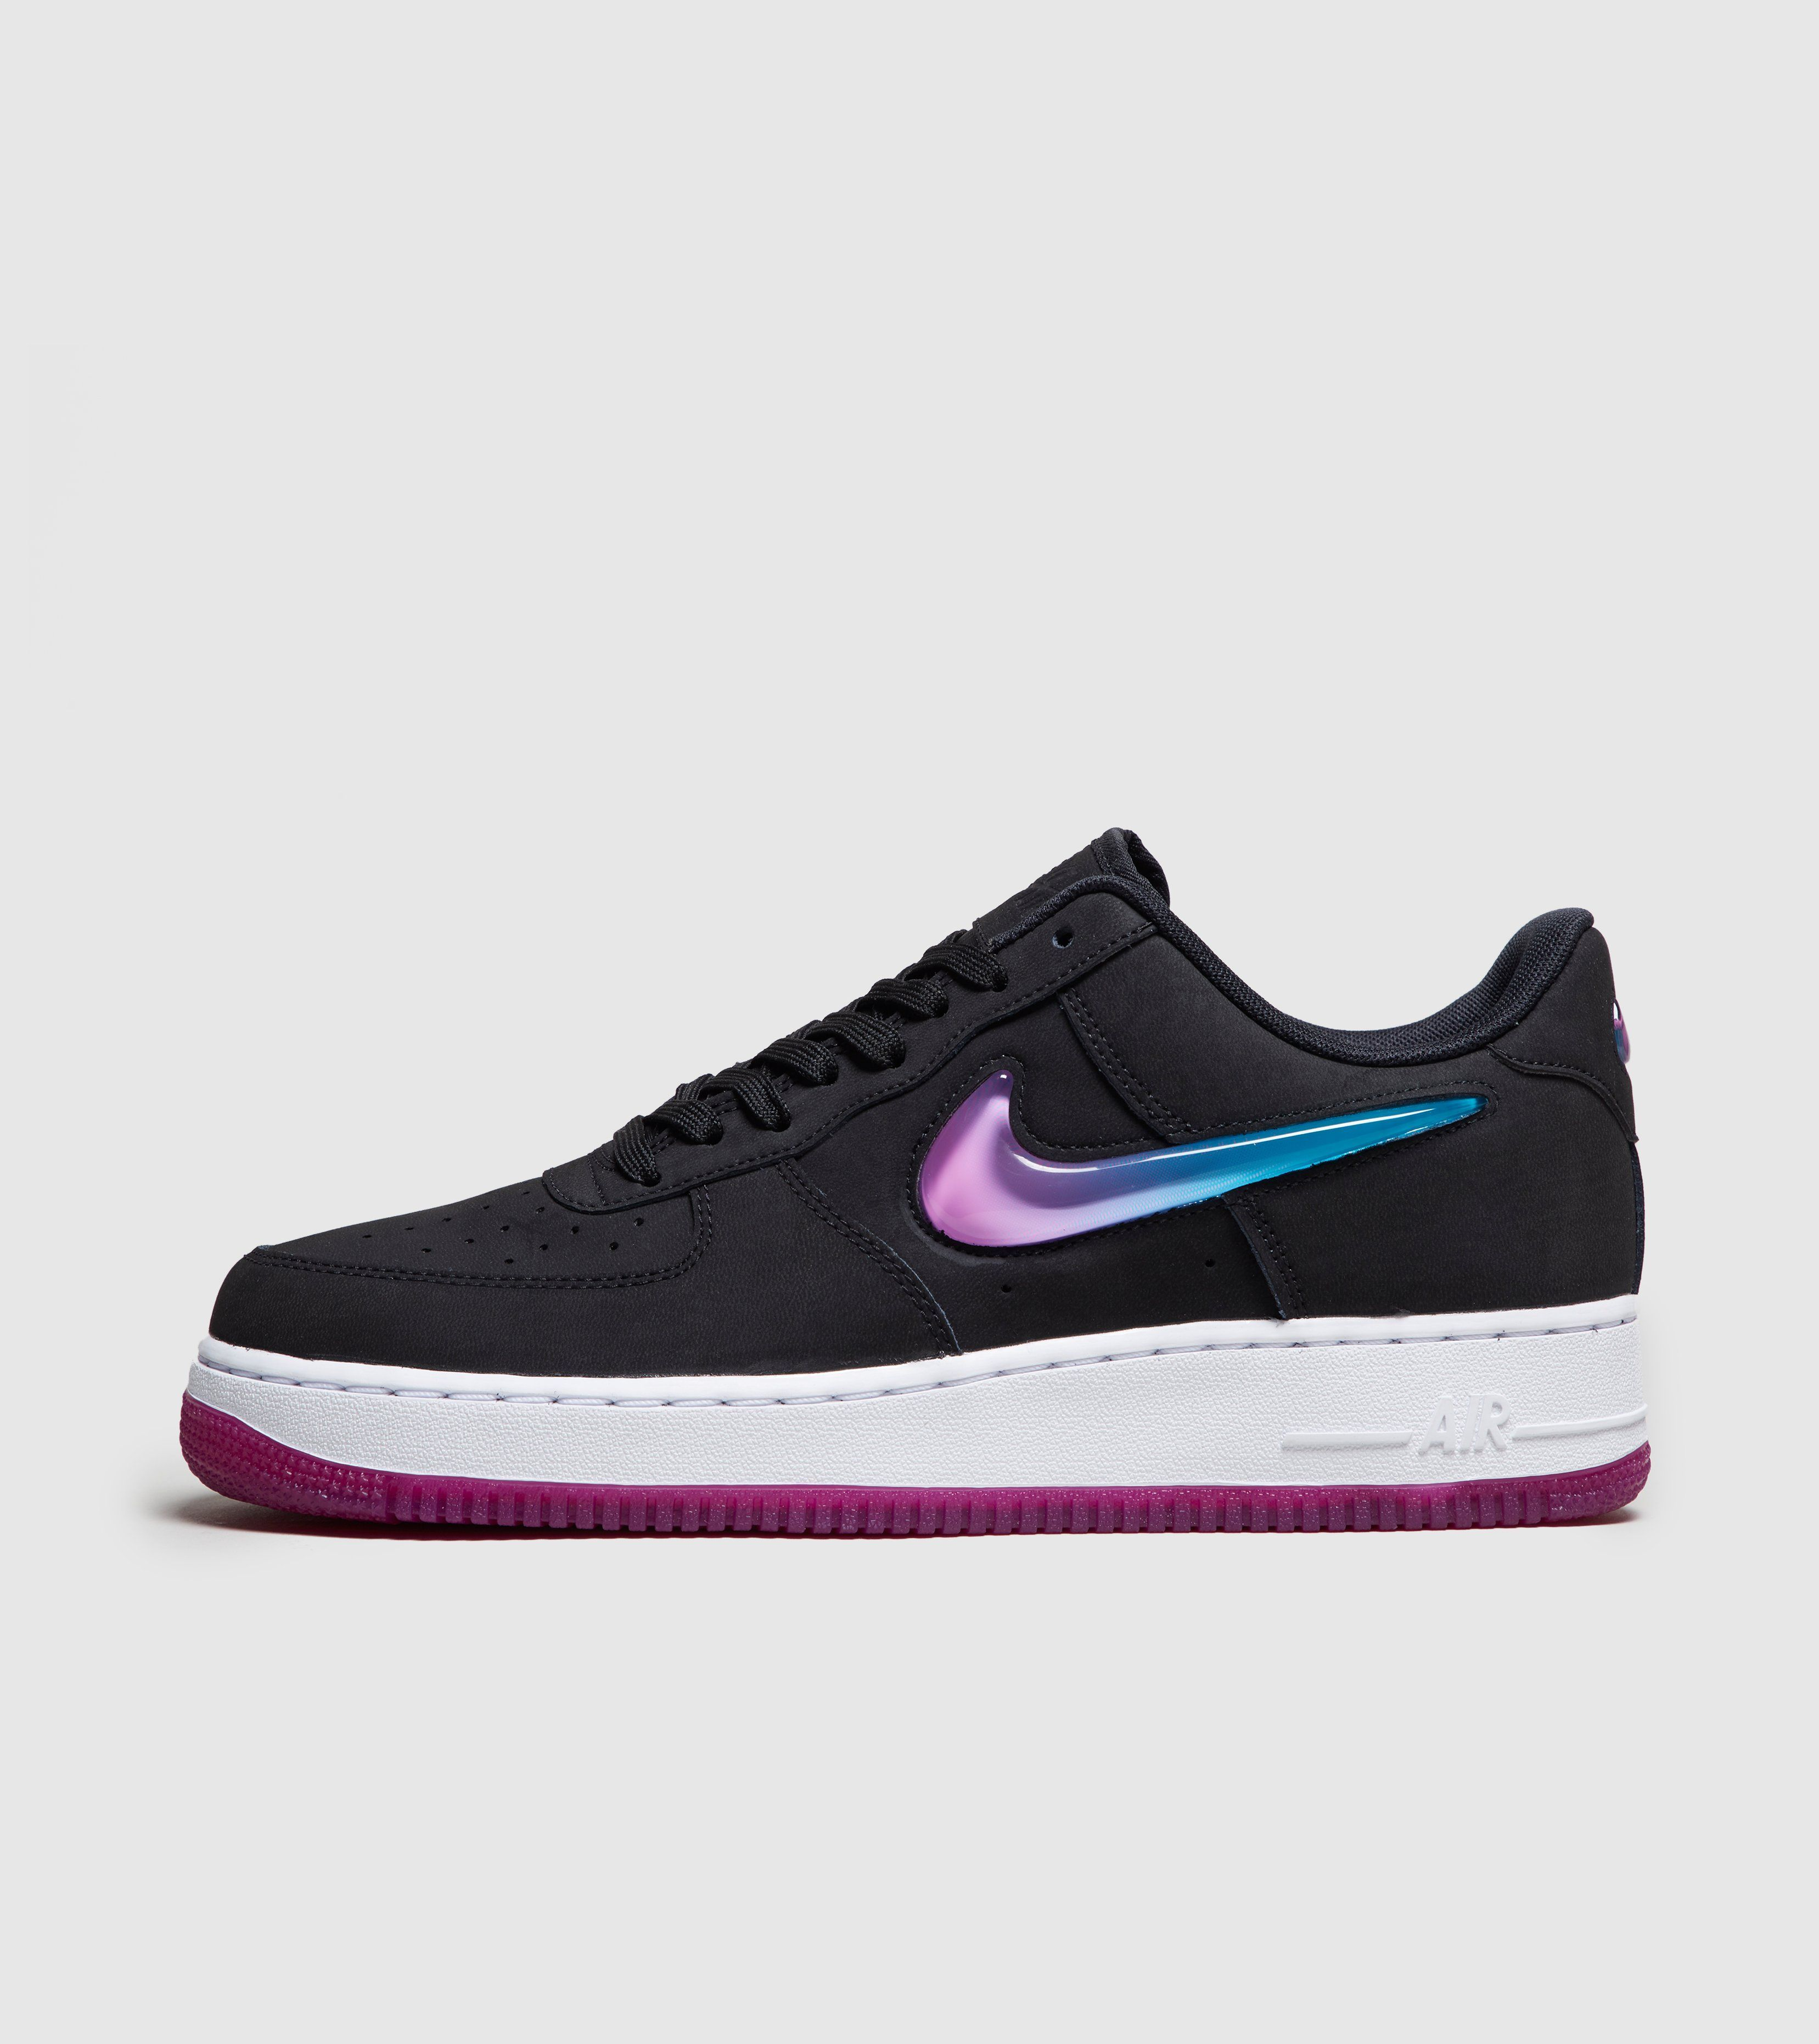 Nike Air Force 1 Premium 'Jelly' - find